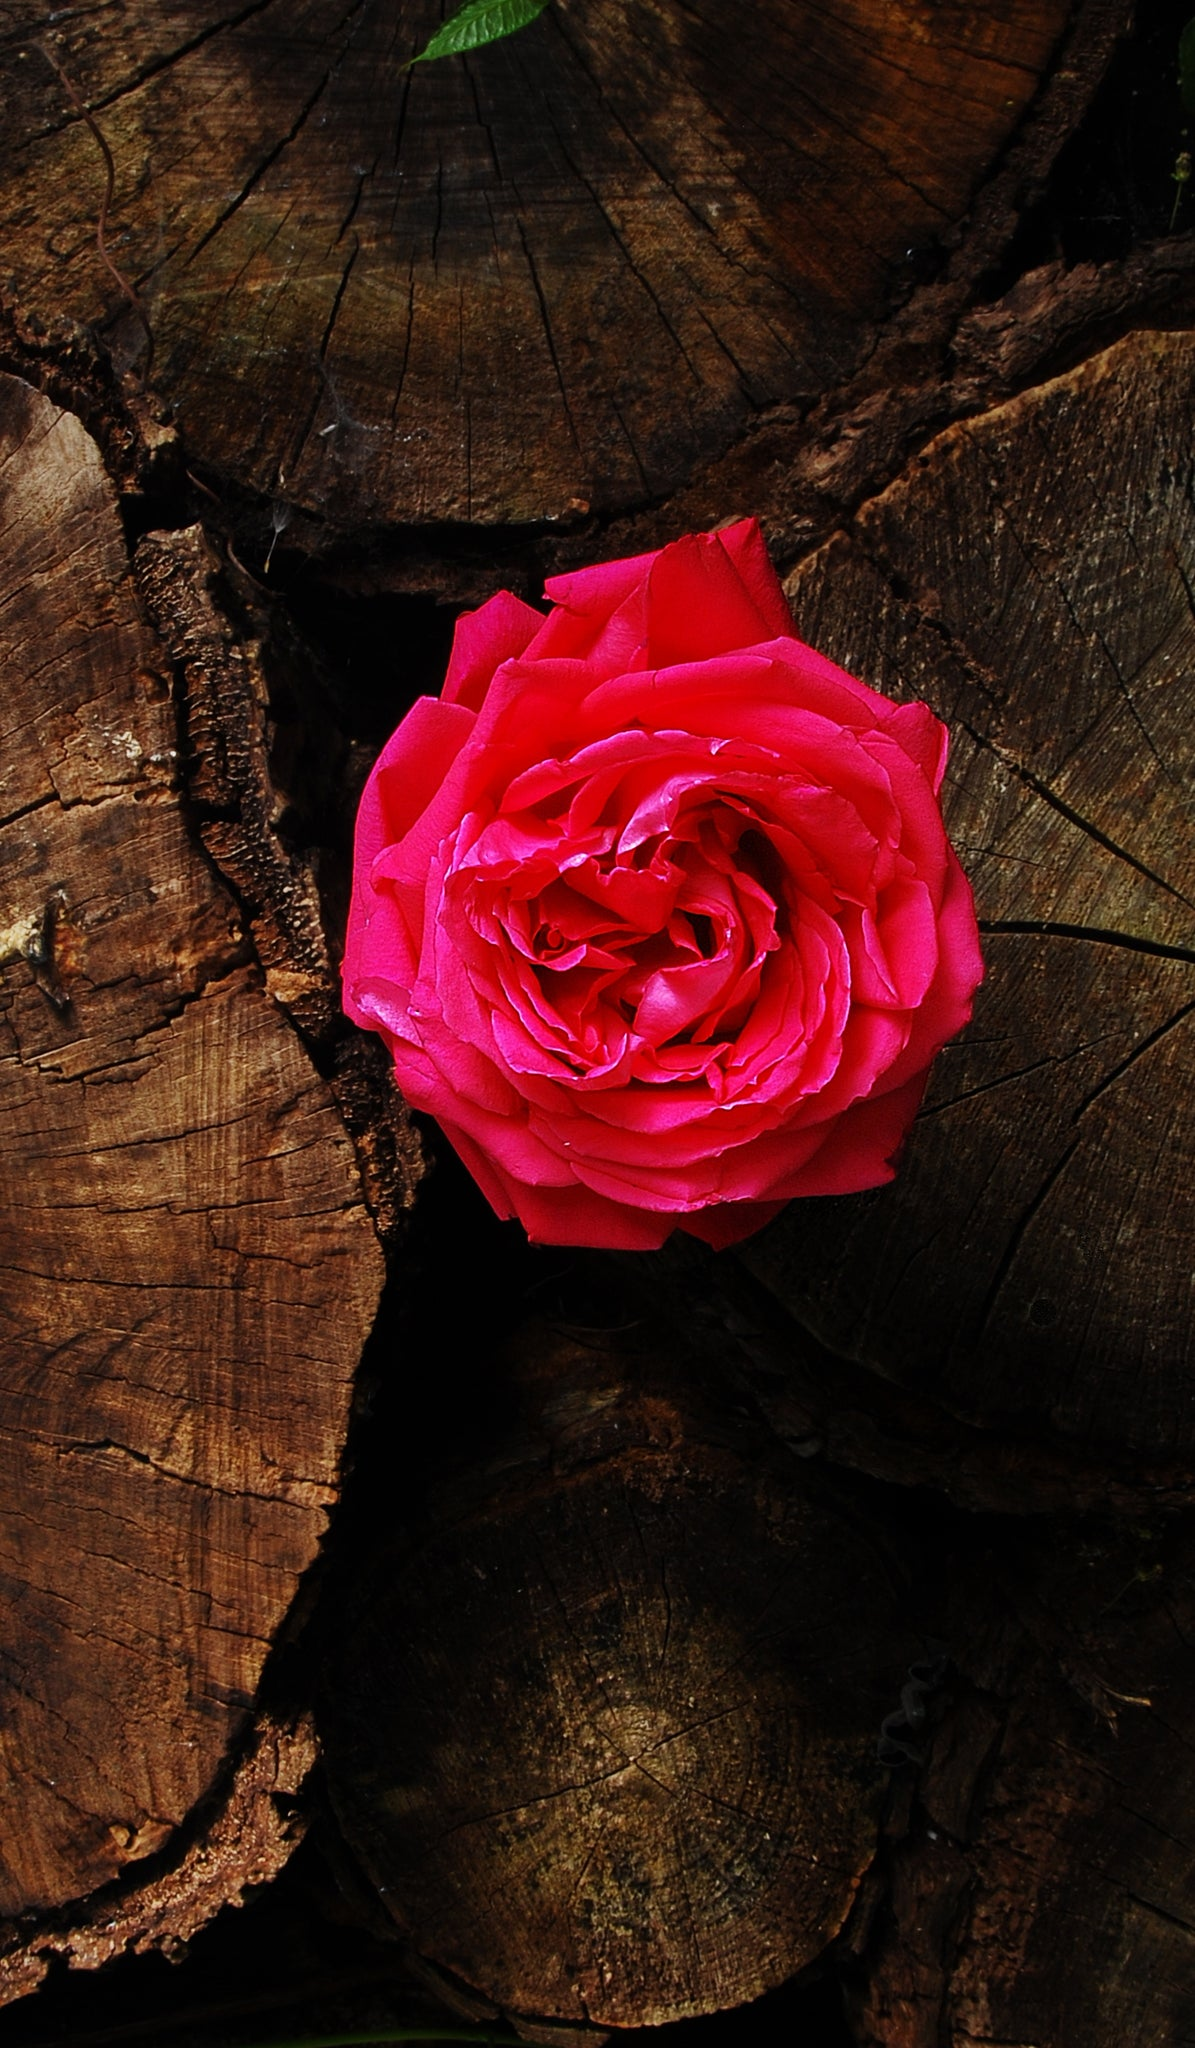 Red Rose between Logs of Wood